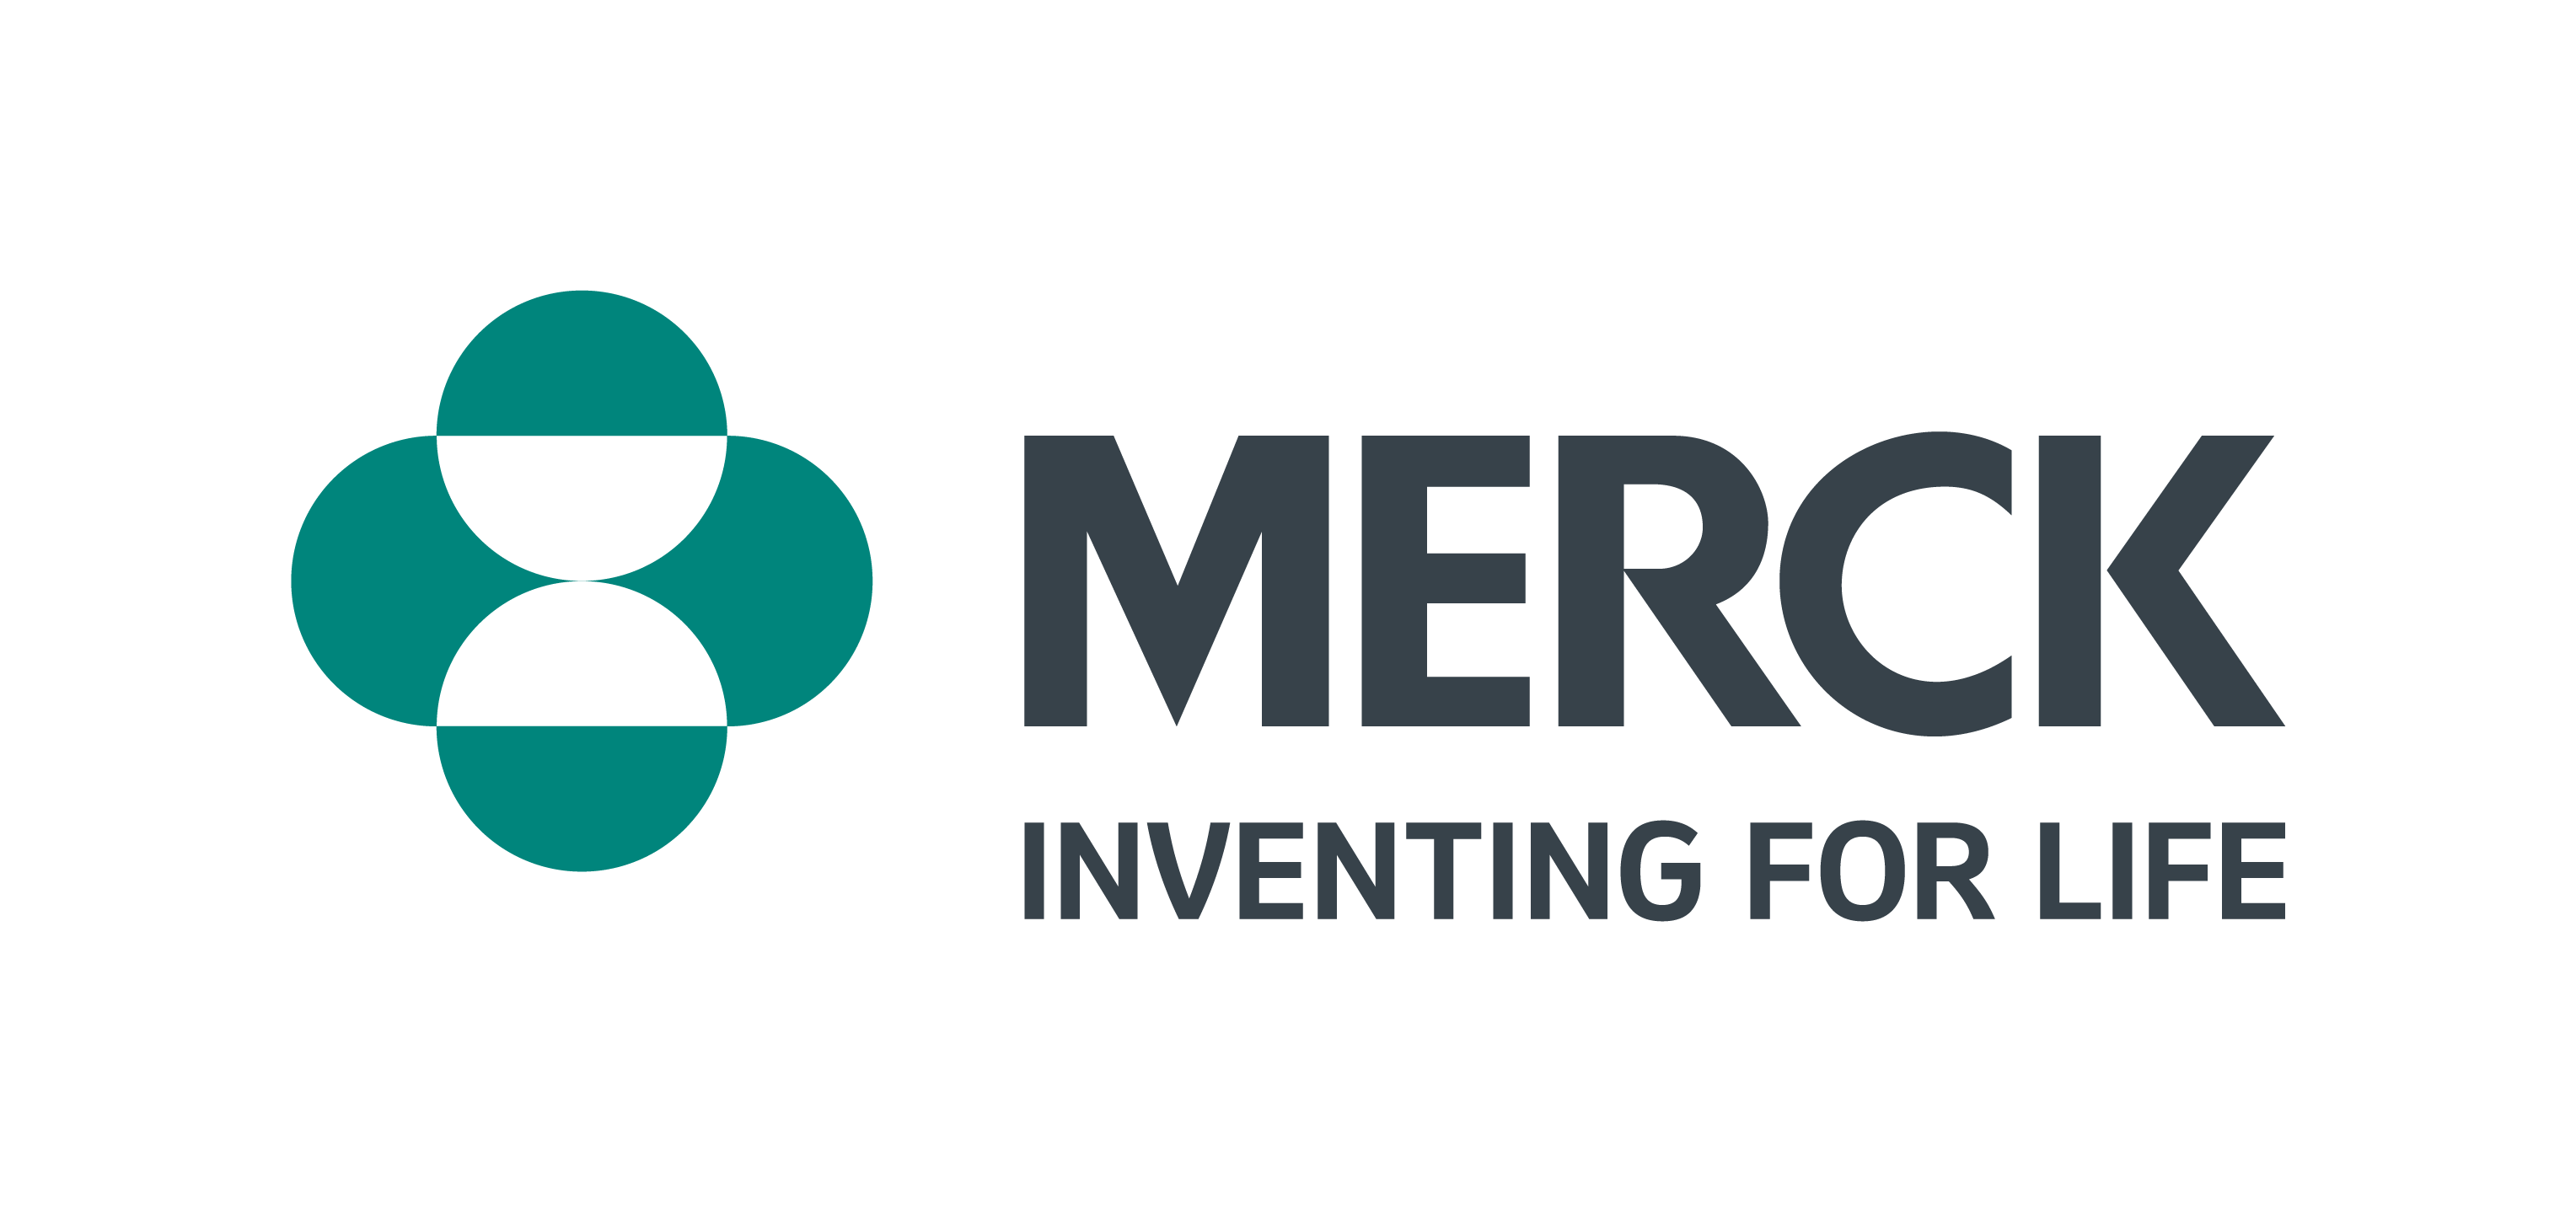 """Logo with green image and the words """"Merck - Inventing for Life"""""""